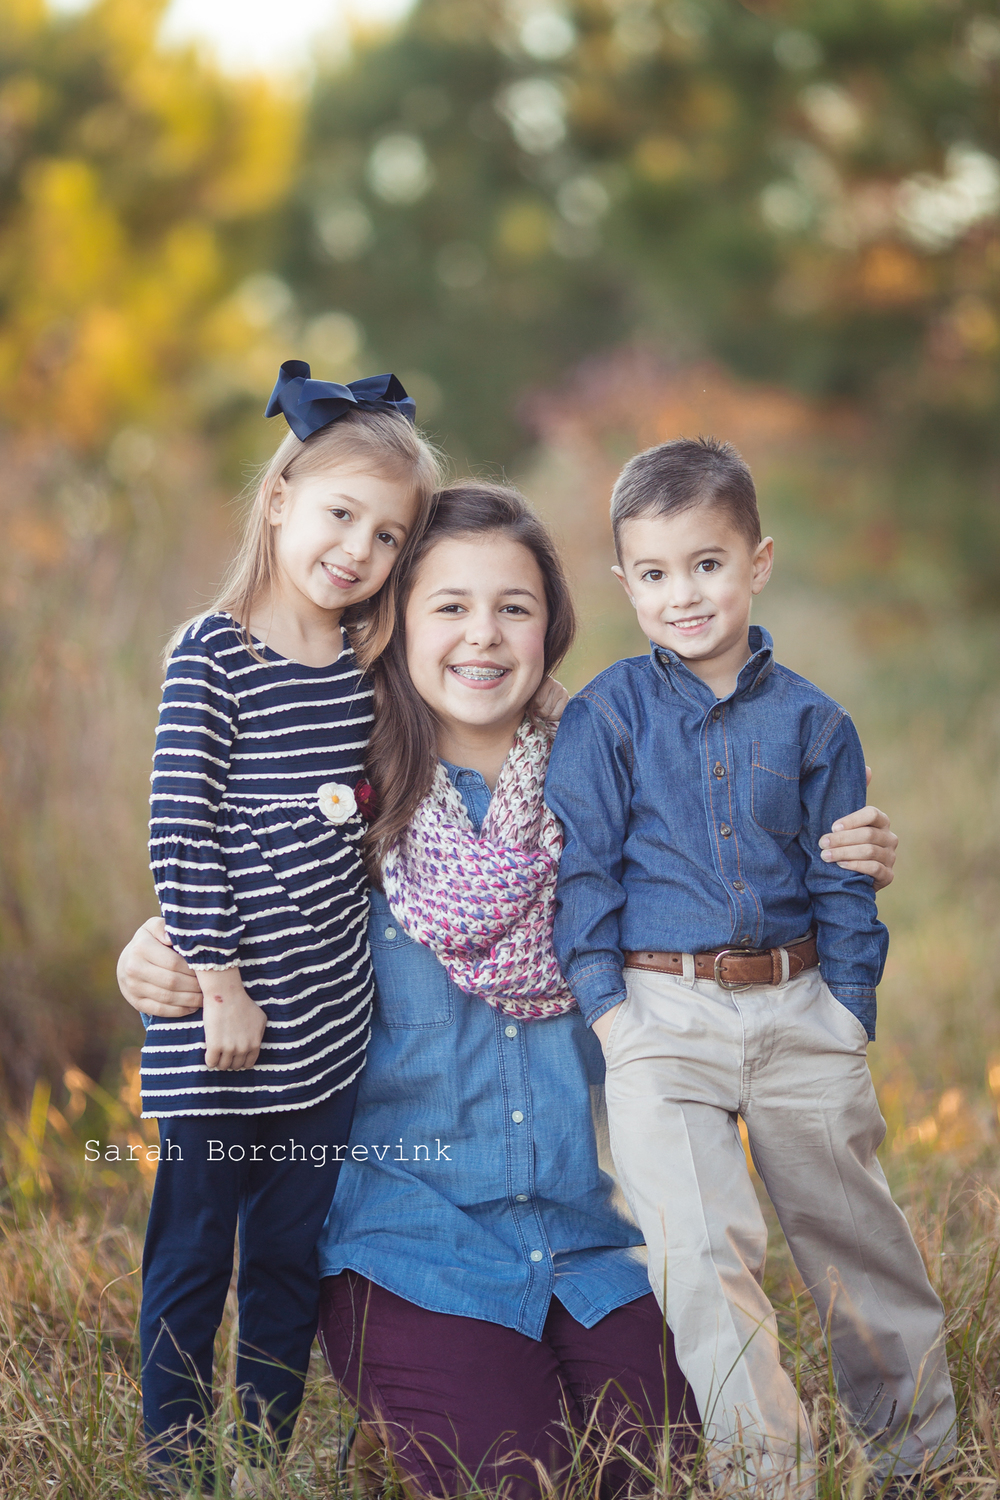 Cypress, TX family photographer. www.sarahborchgrevinkphotography.com. NW Houston family and child photographer.